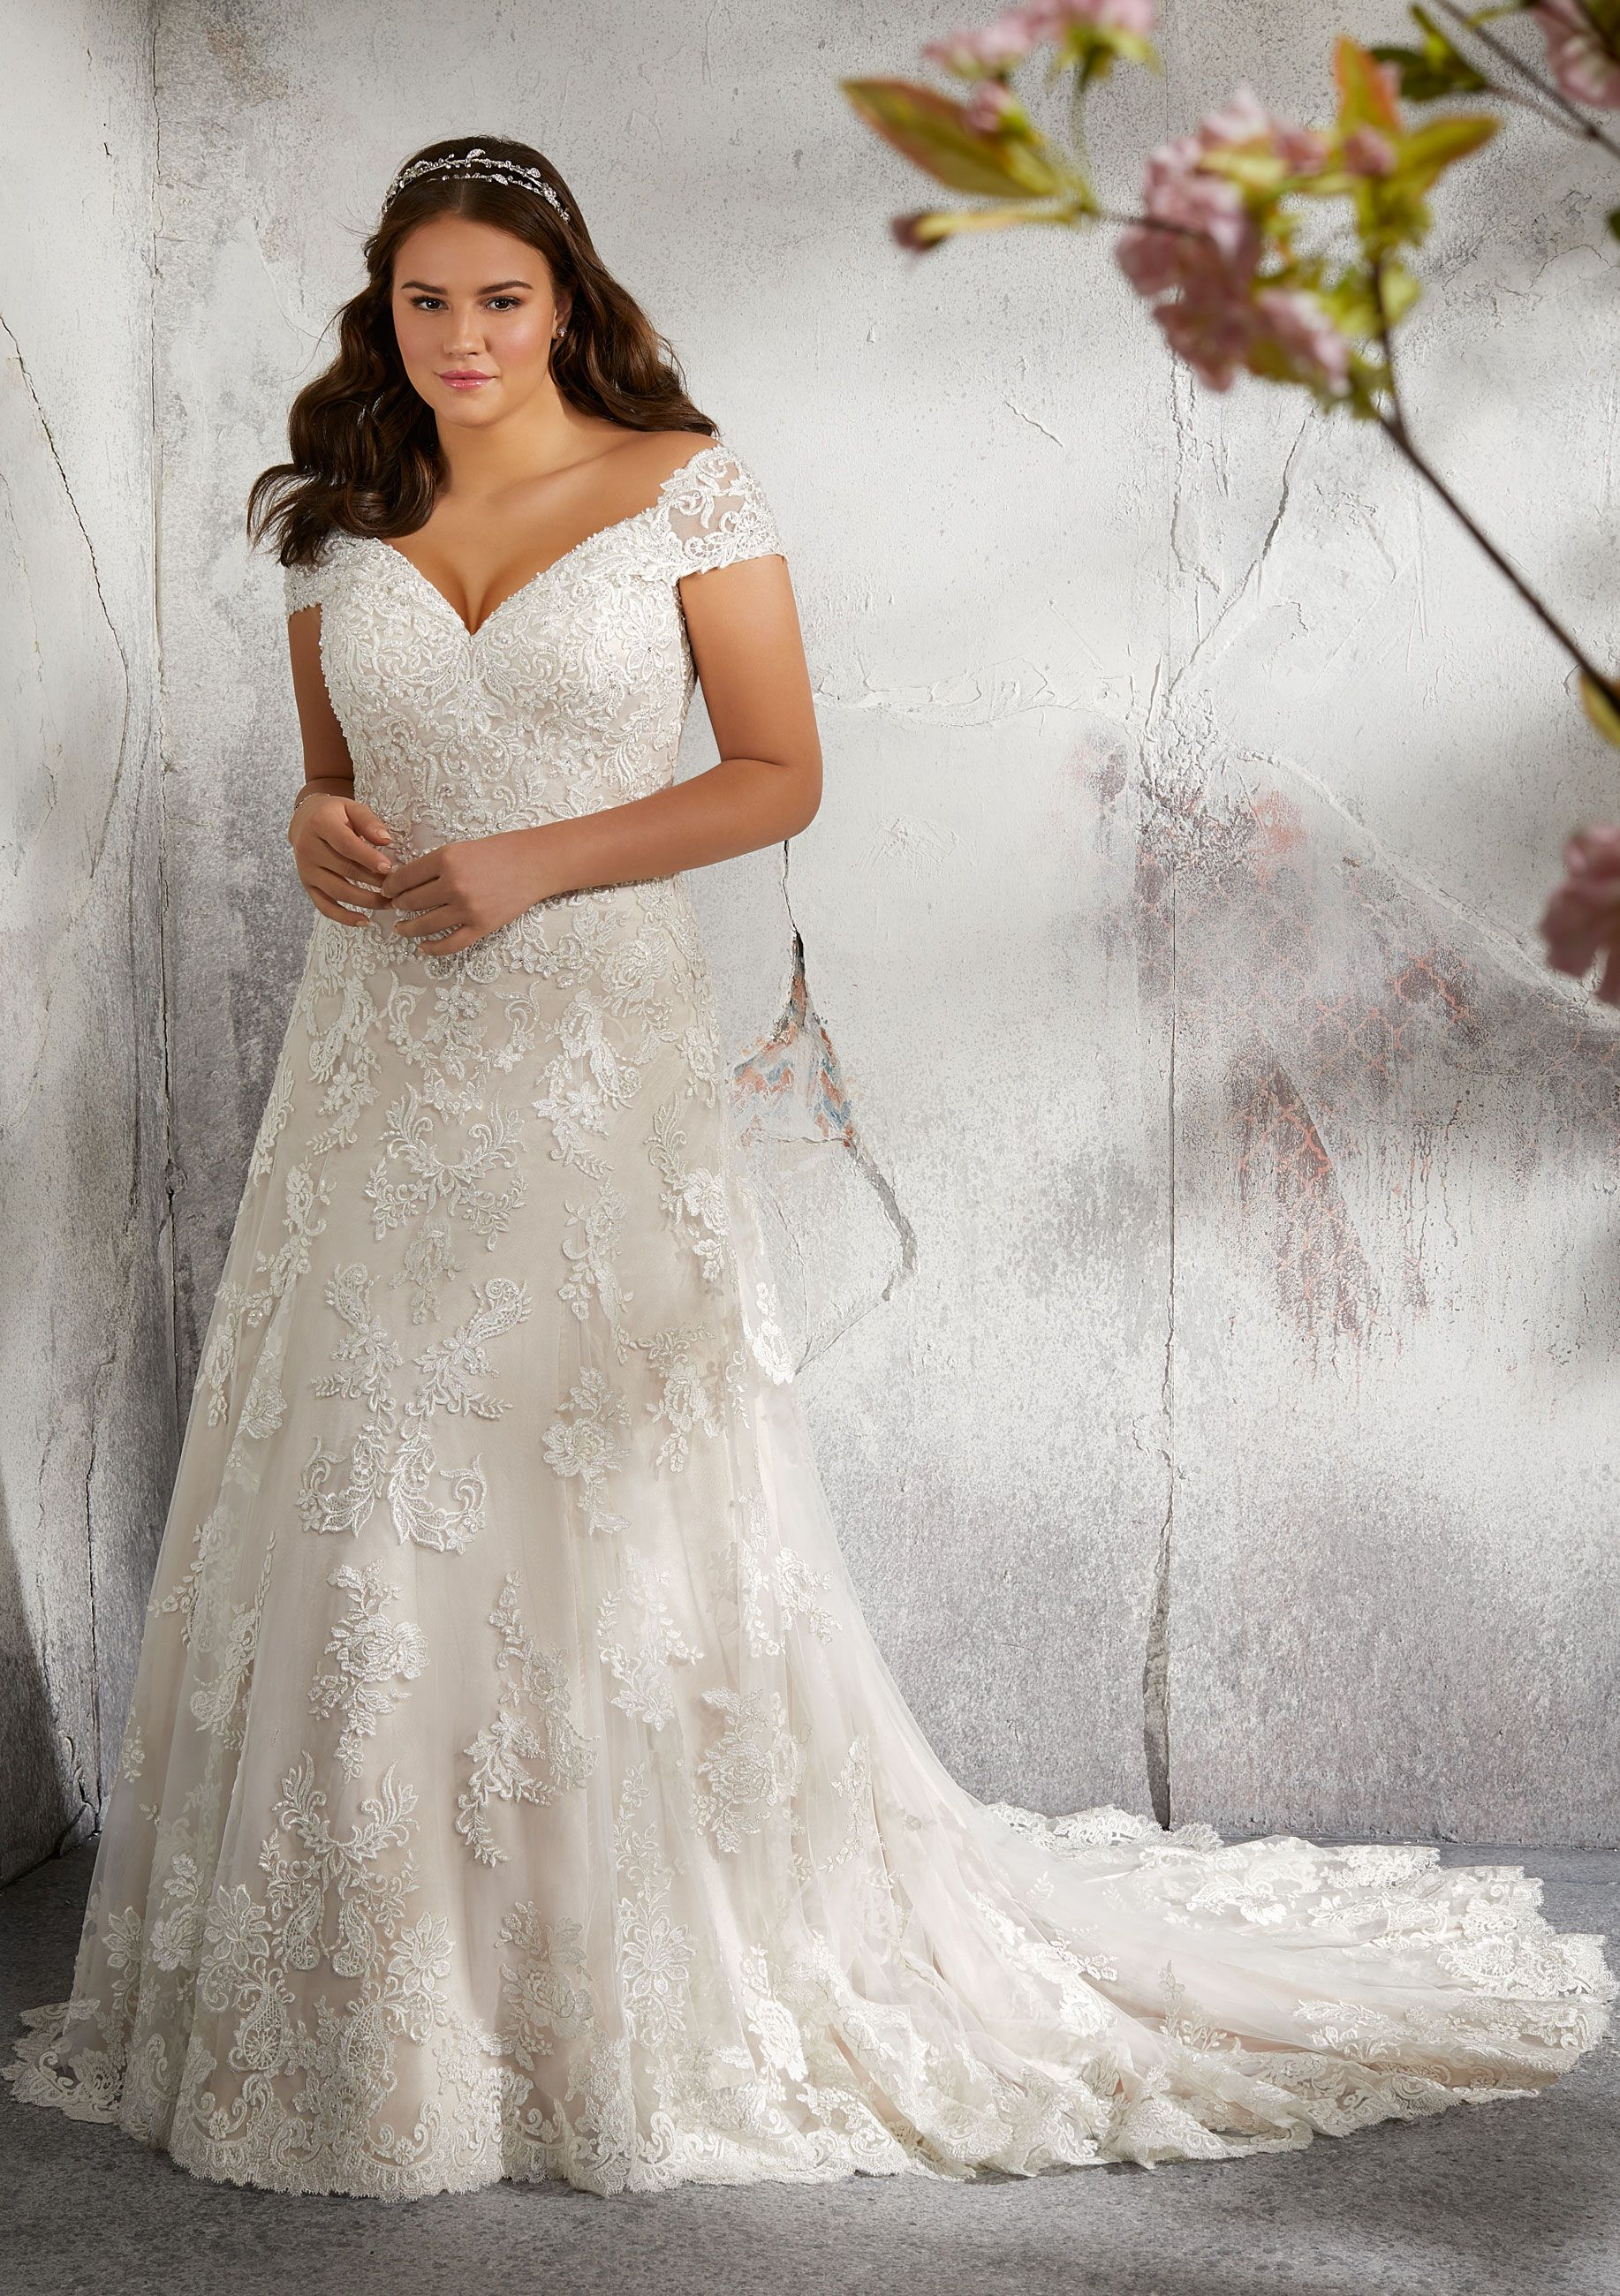 Plus size wedding dress designers  Lilith Wedding Dress  Thatus what Iuve had in mind for when I say